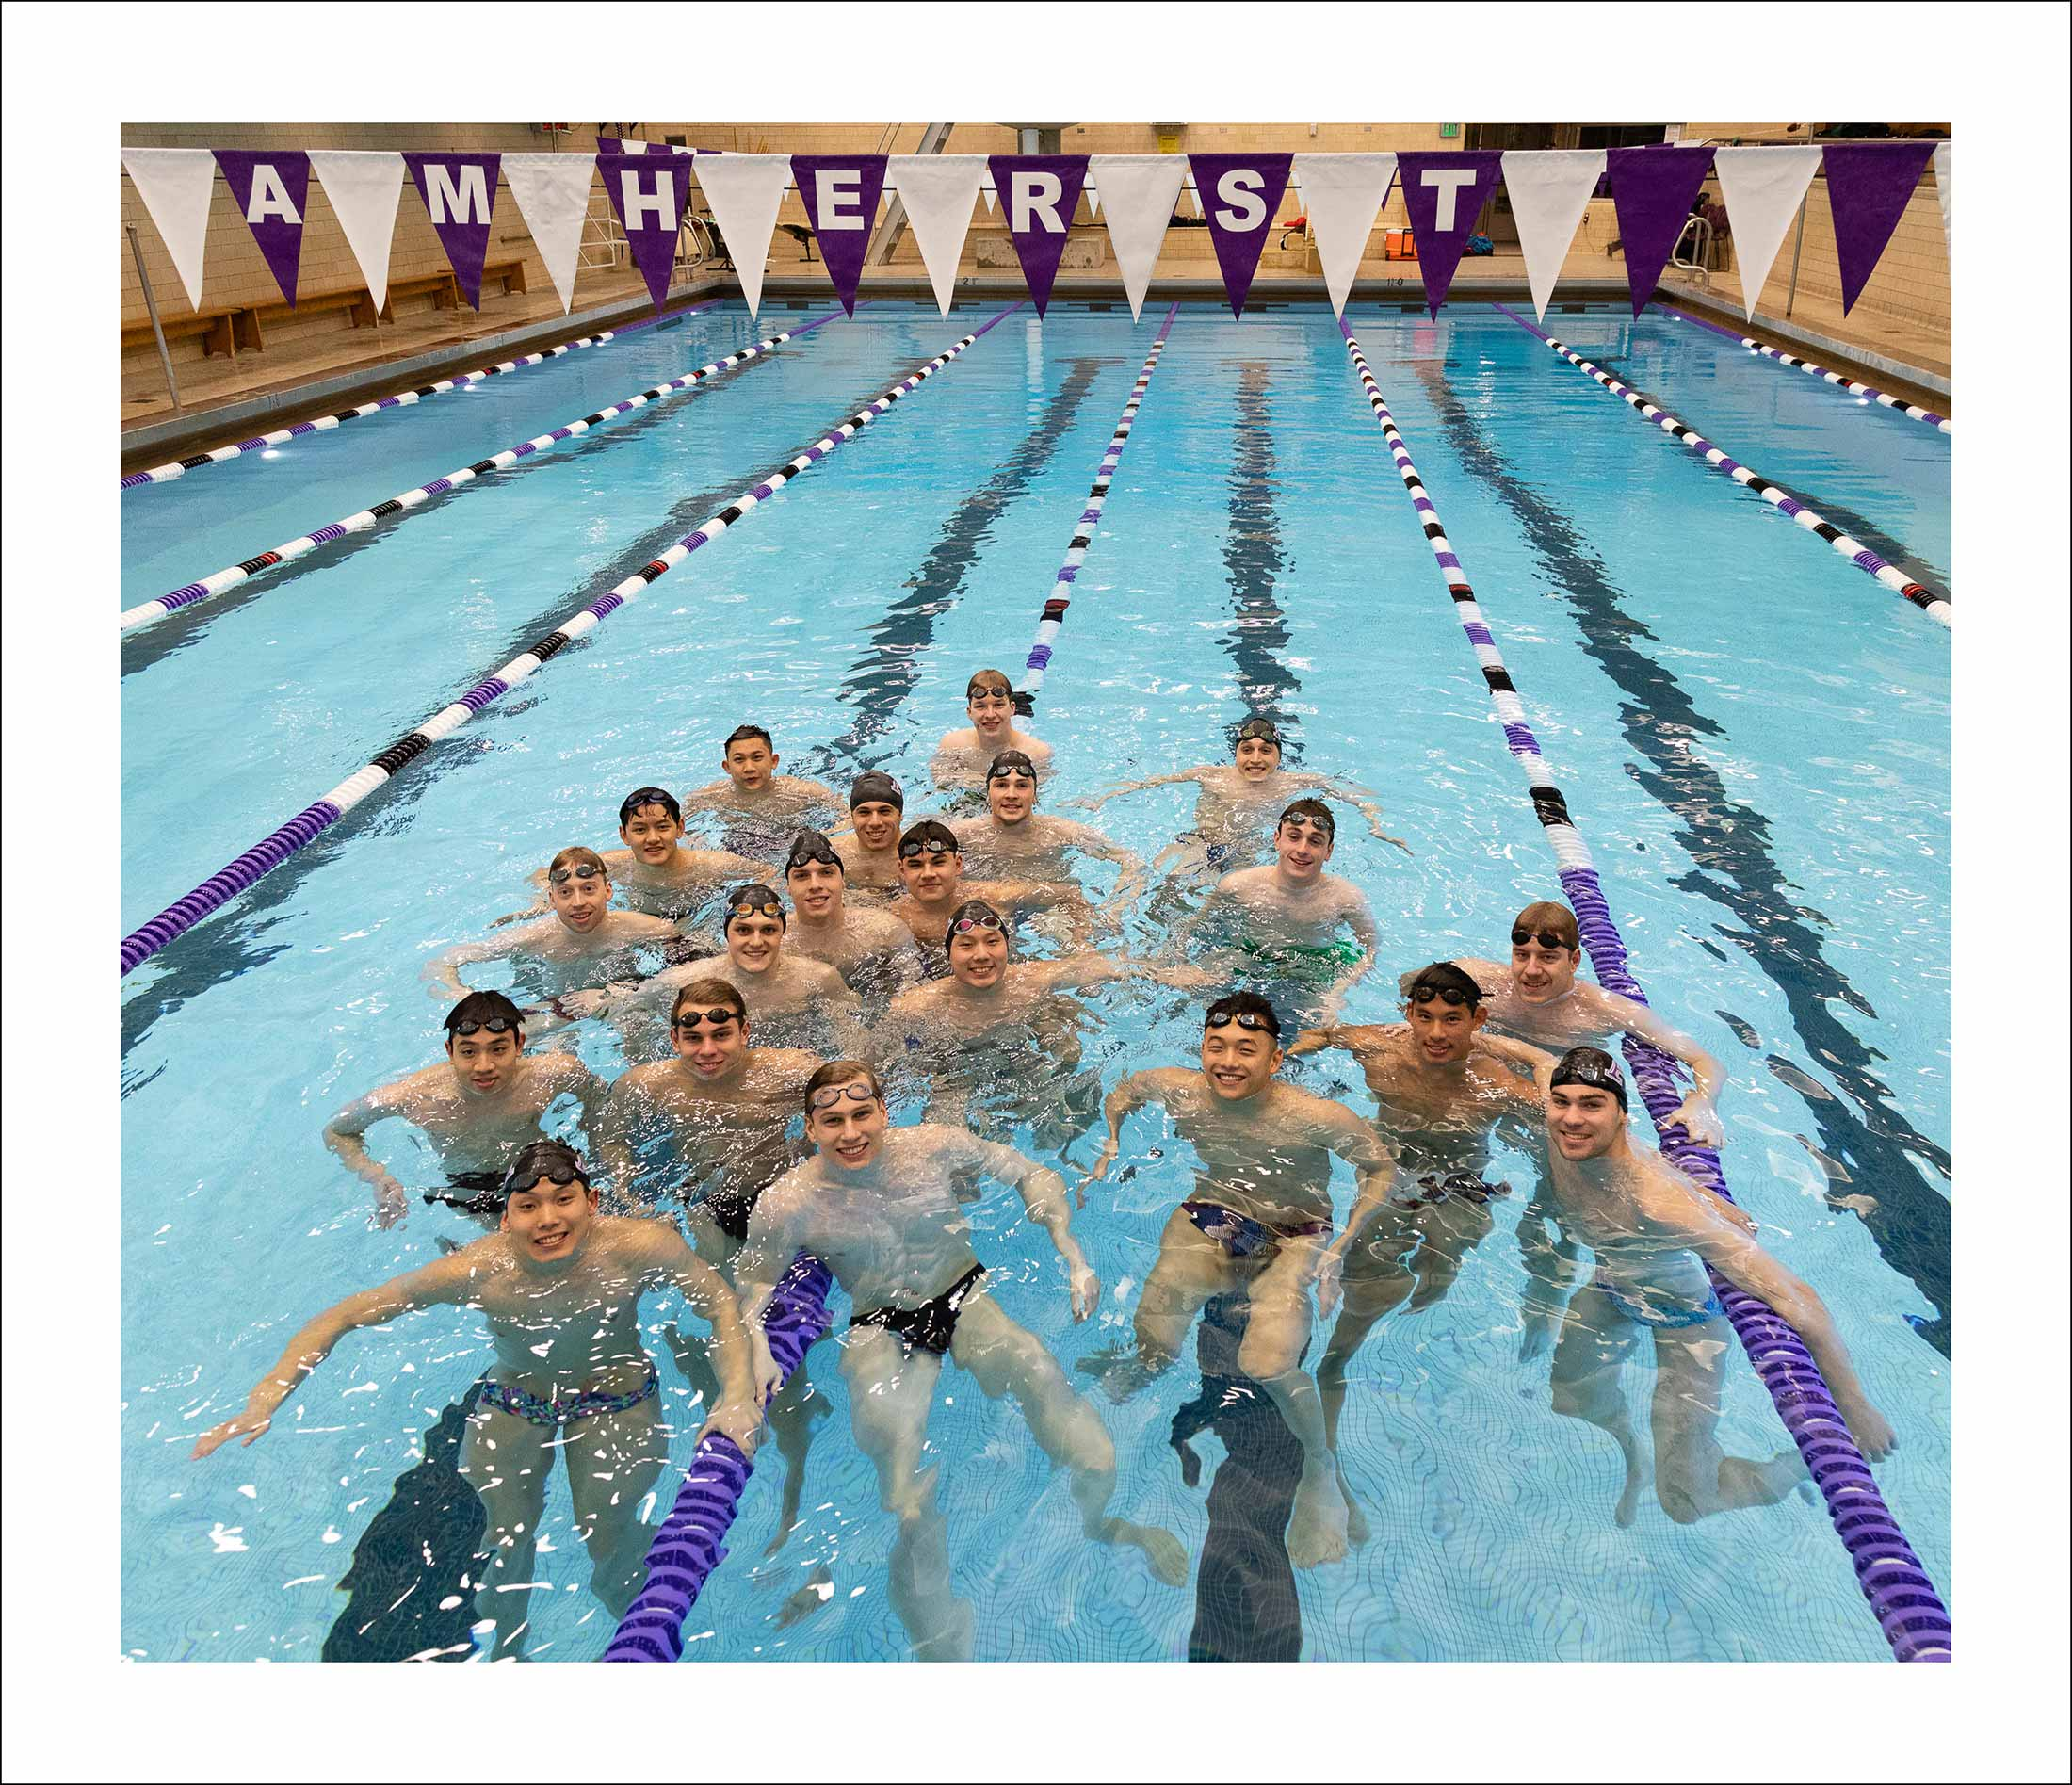 A large group of men smiling at the camera from inside of a swimming pool